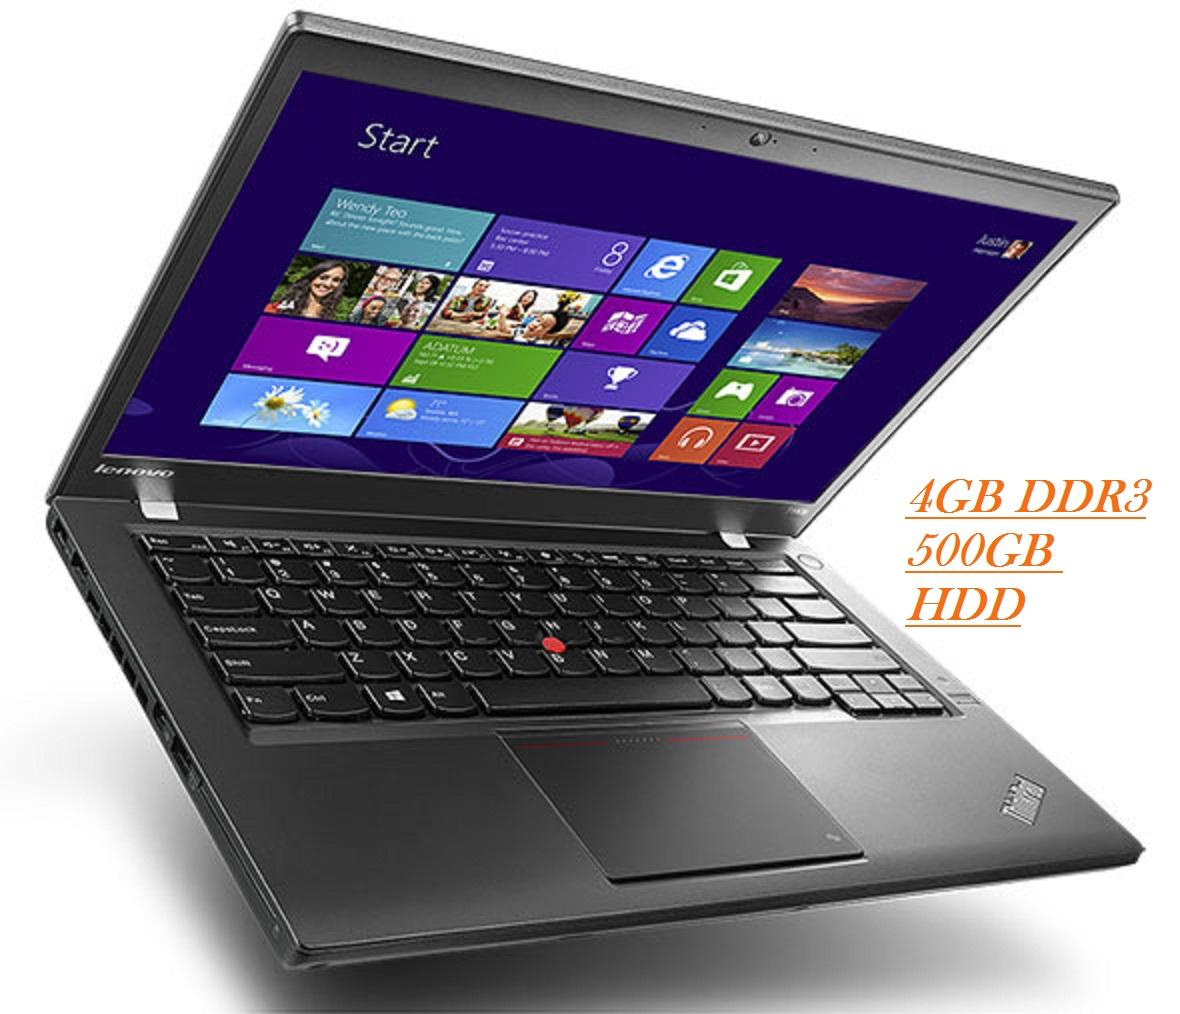 (REFURBISHED)Lenovo ThinkPad T440  Intel core i5 4300U Vpro Processor 1.9GHZ/4GB DDR3/500GB HDD/INTEL HD  GRAPHIC/14DISPLAY/W8 PRO Malaysia